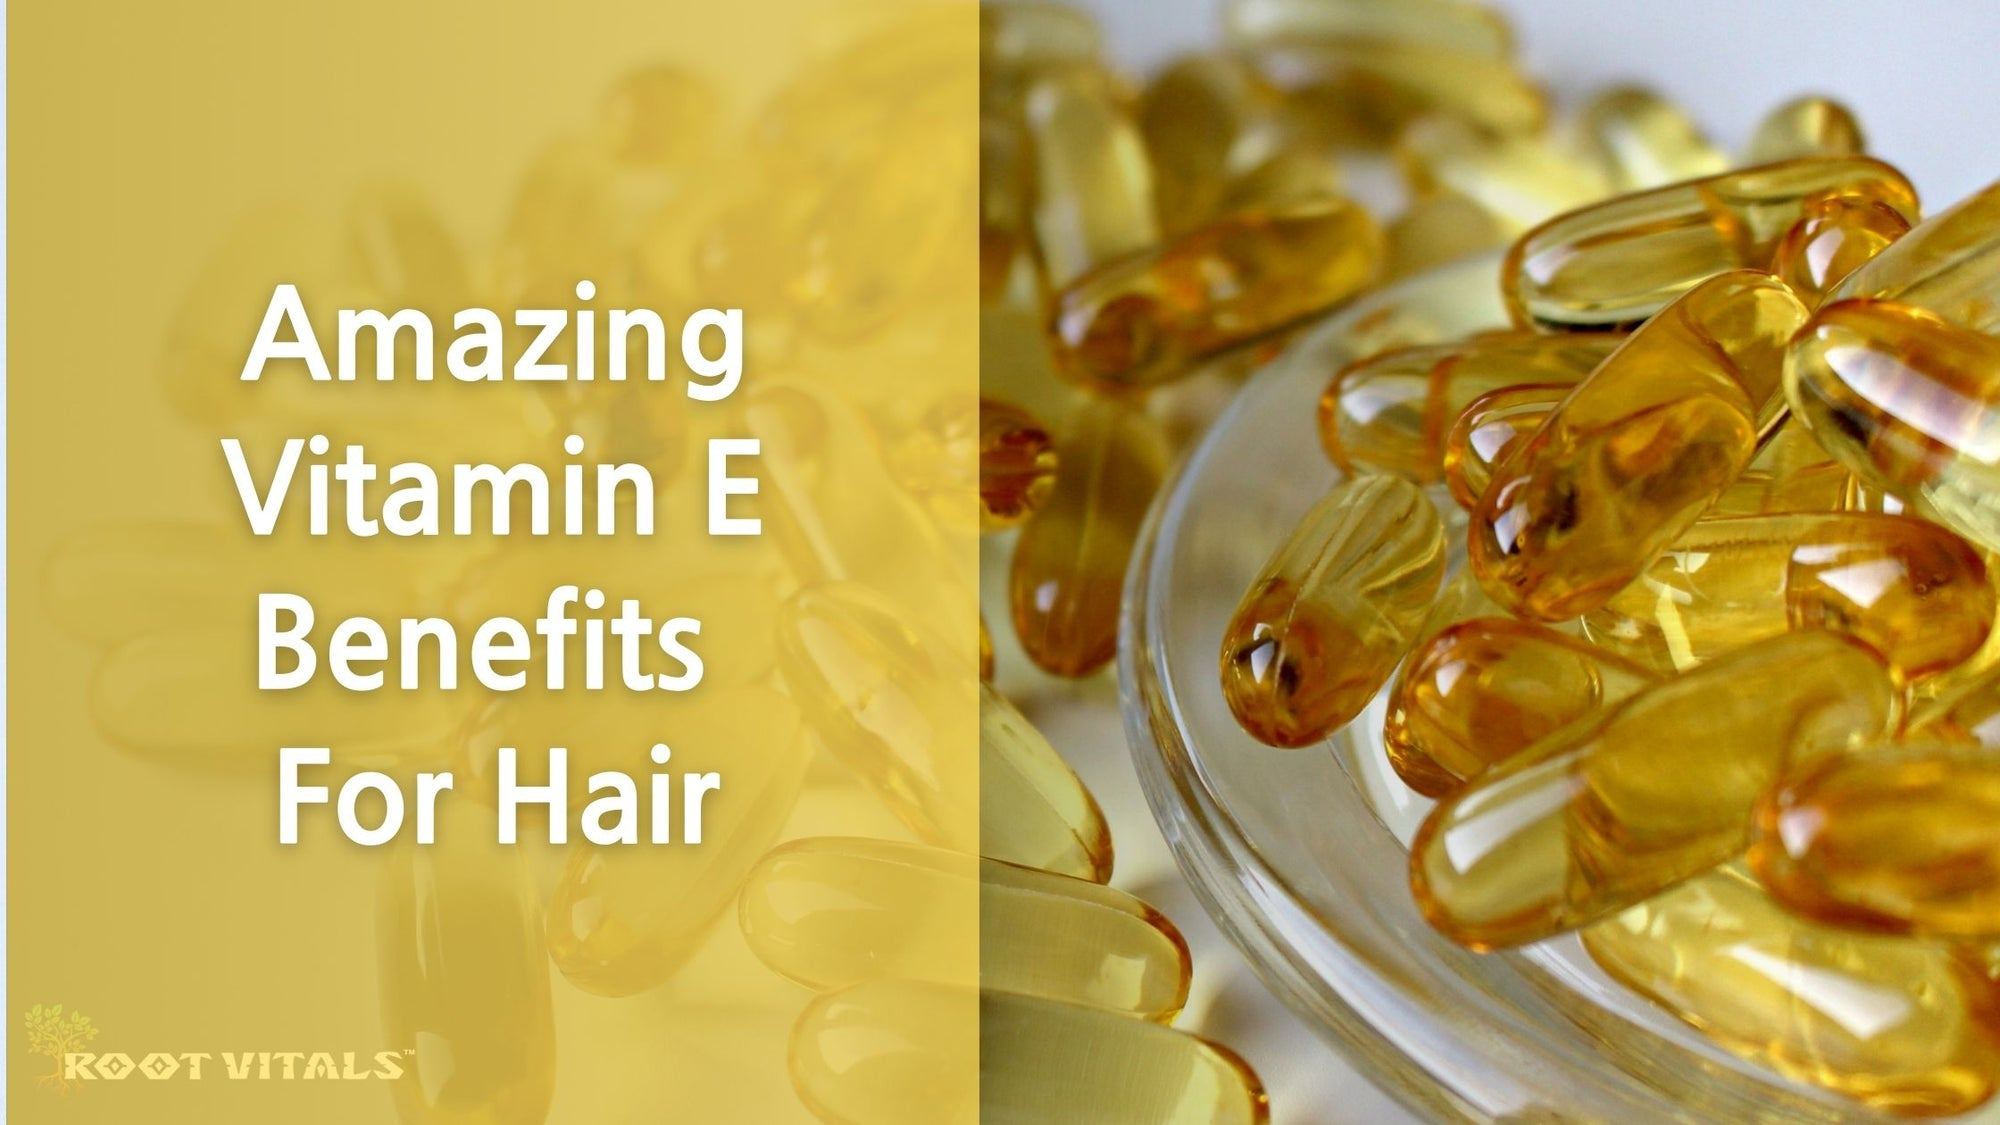 How to prevent hair loss with amazing vitamin E benefits for hair